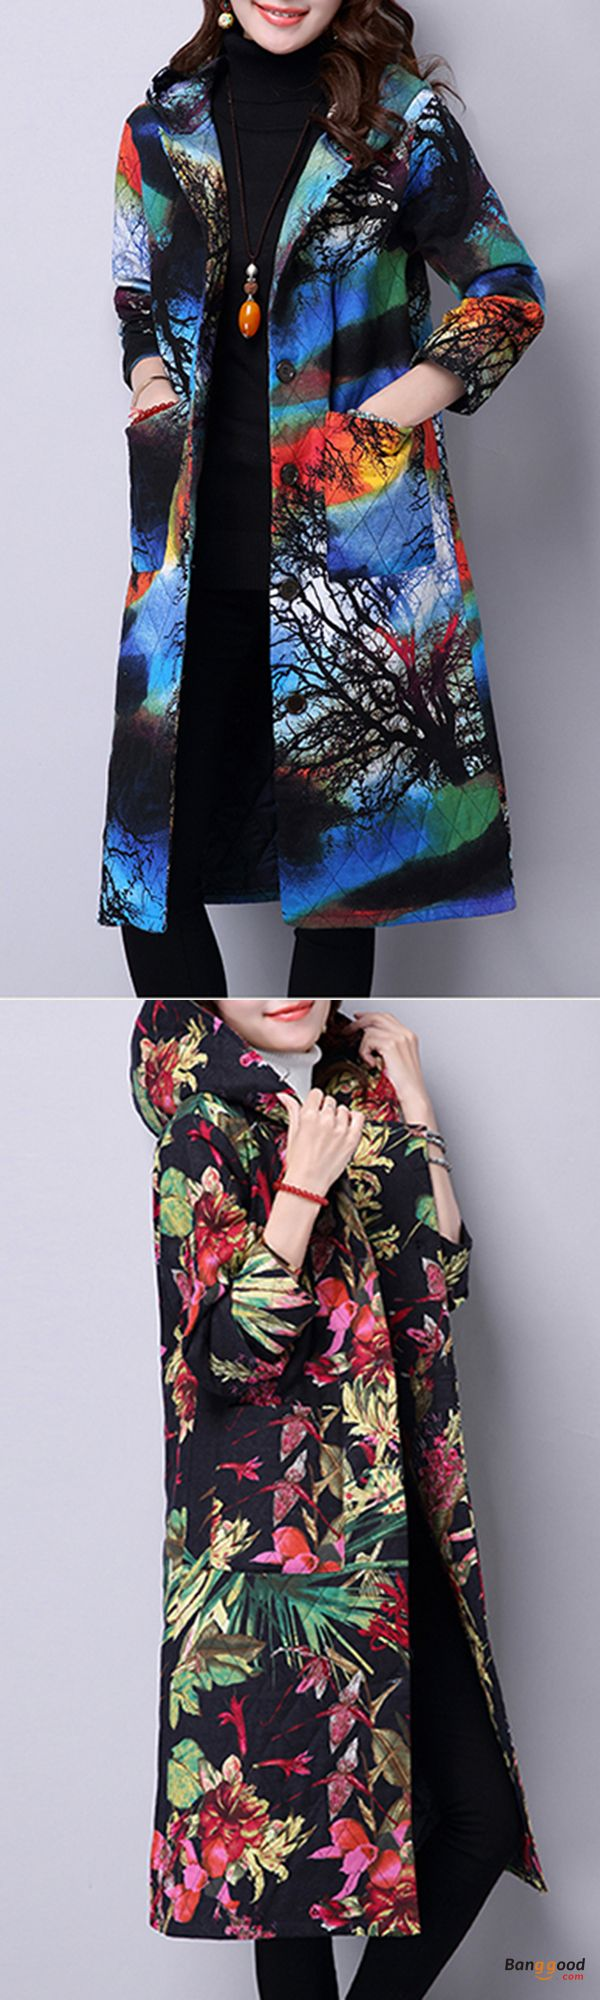 US$44.99 + Free shipping. Size: S~3XL. Fall in love with elegant and casual style! Folk Style Women Hooded Floral Printed Cotton-Padded Long Coat.